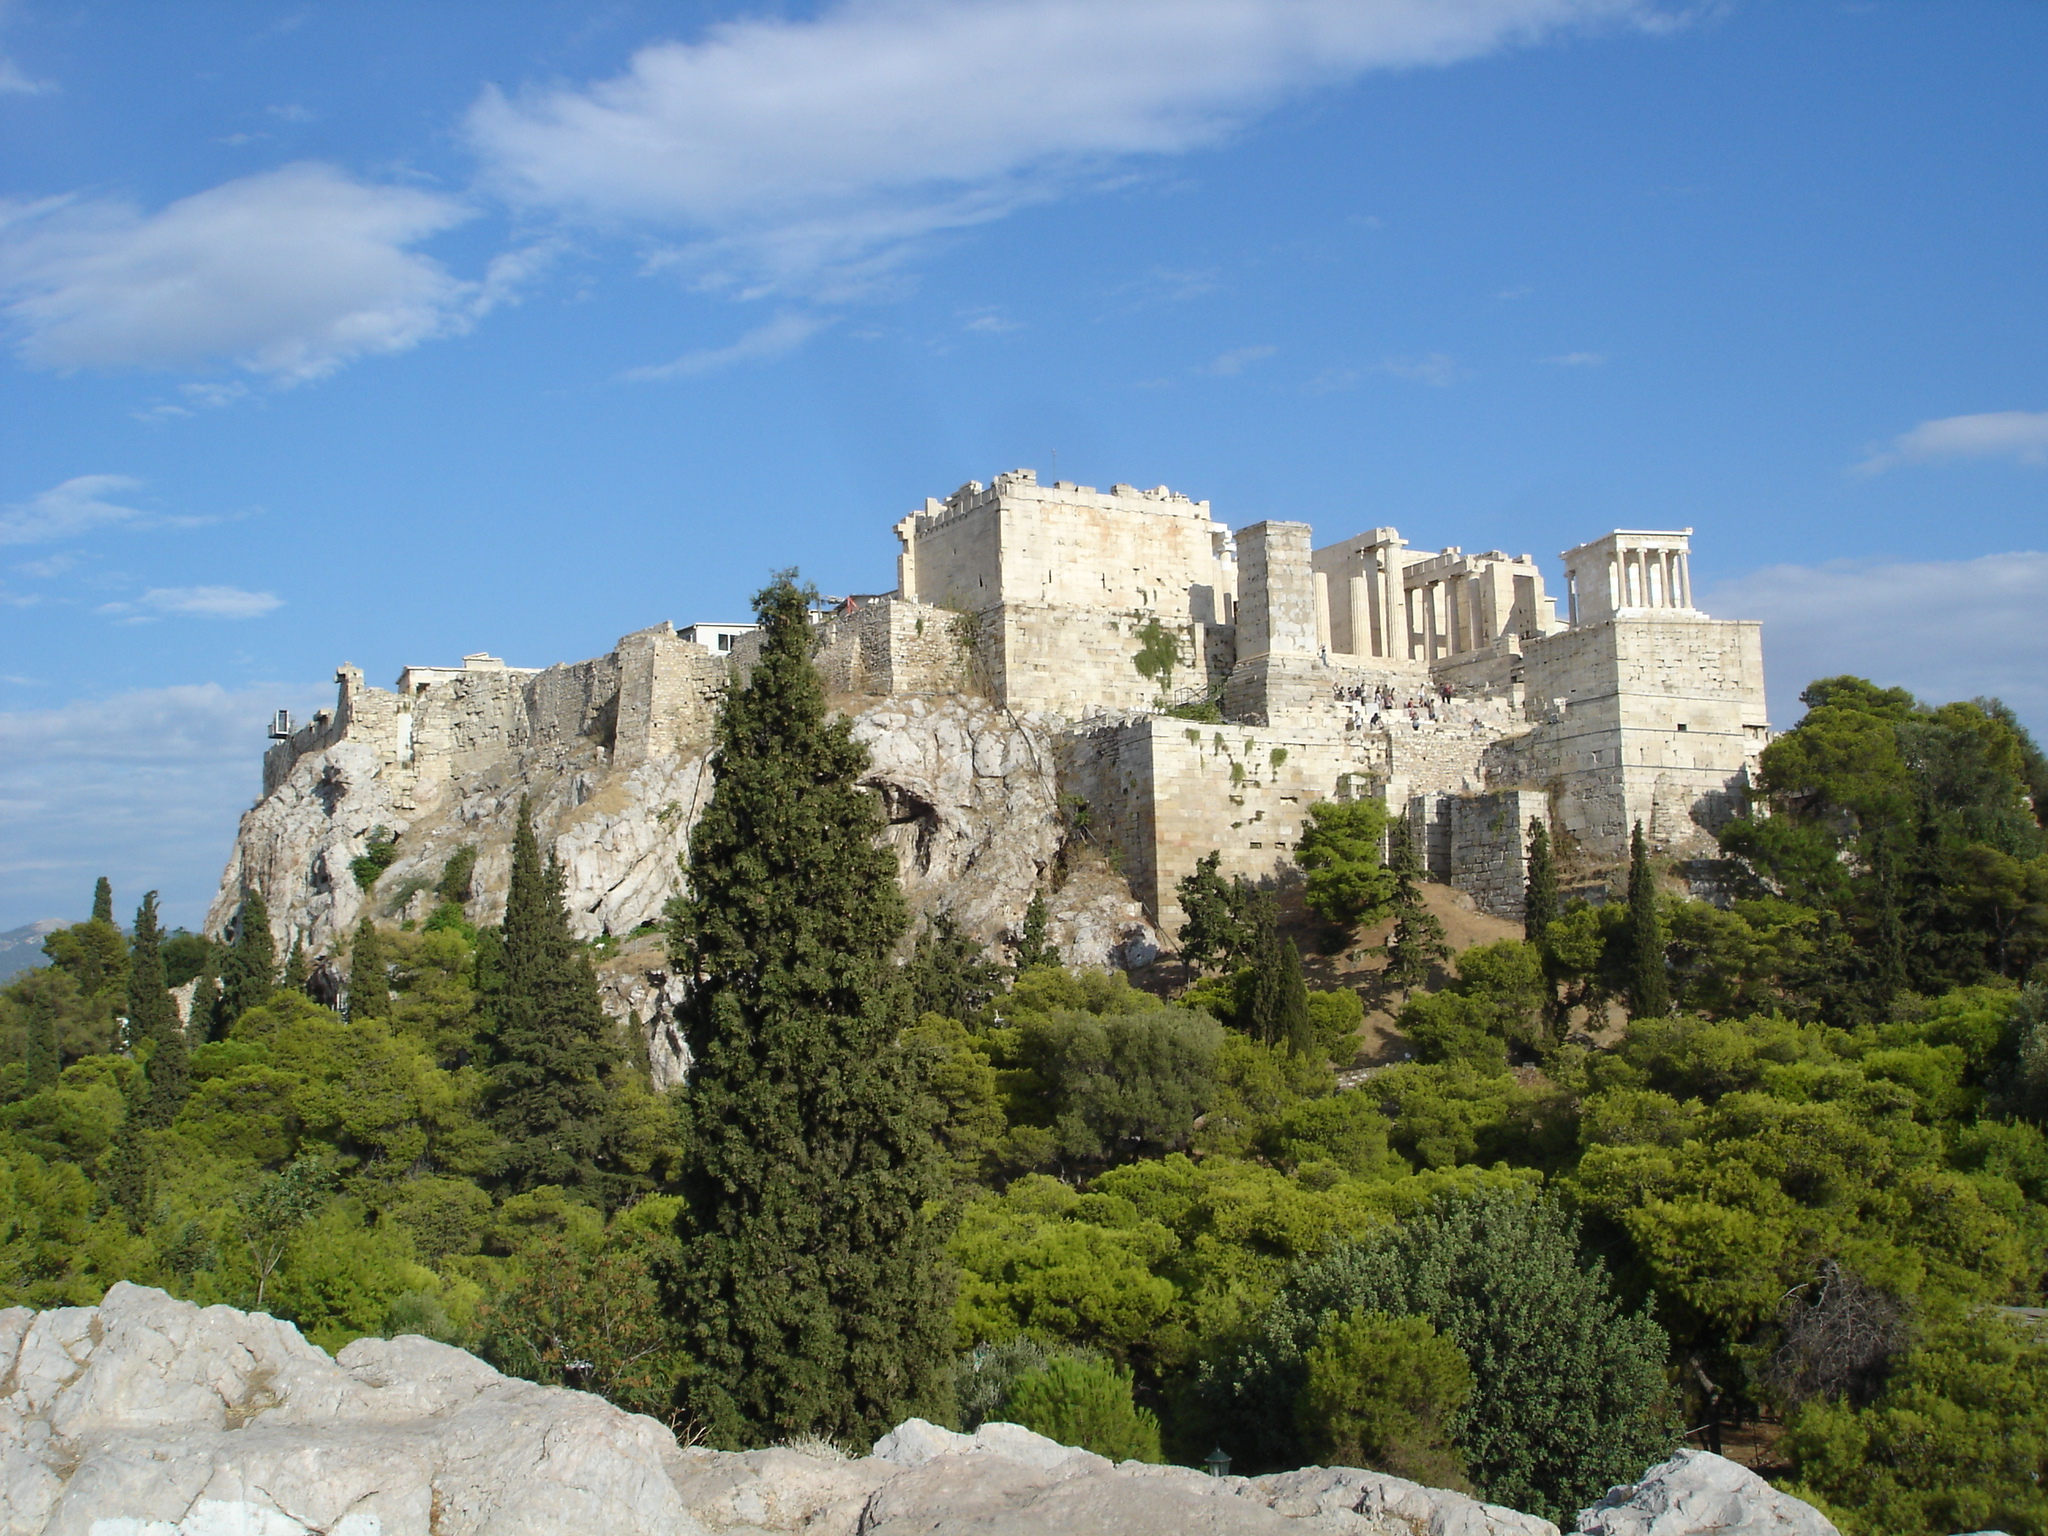 File:Acropolis from Areopagus.jpg